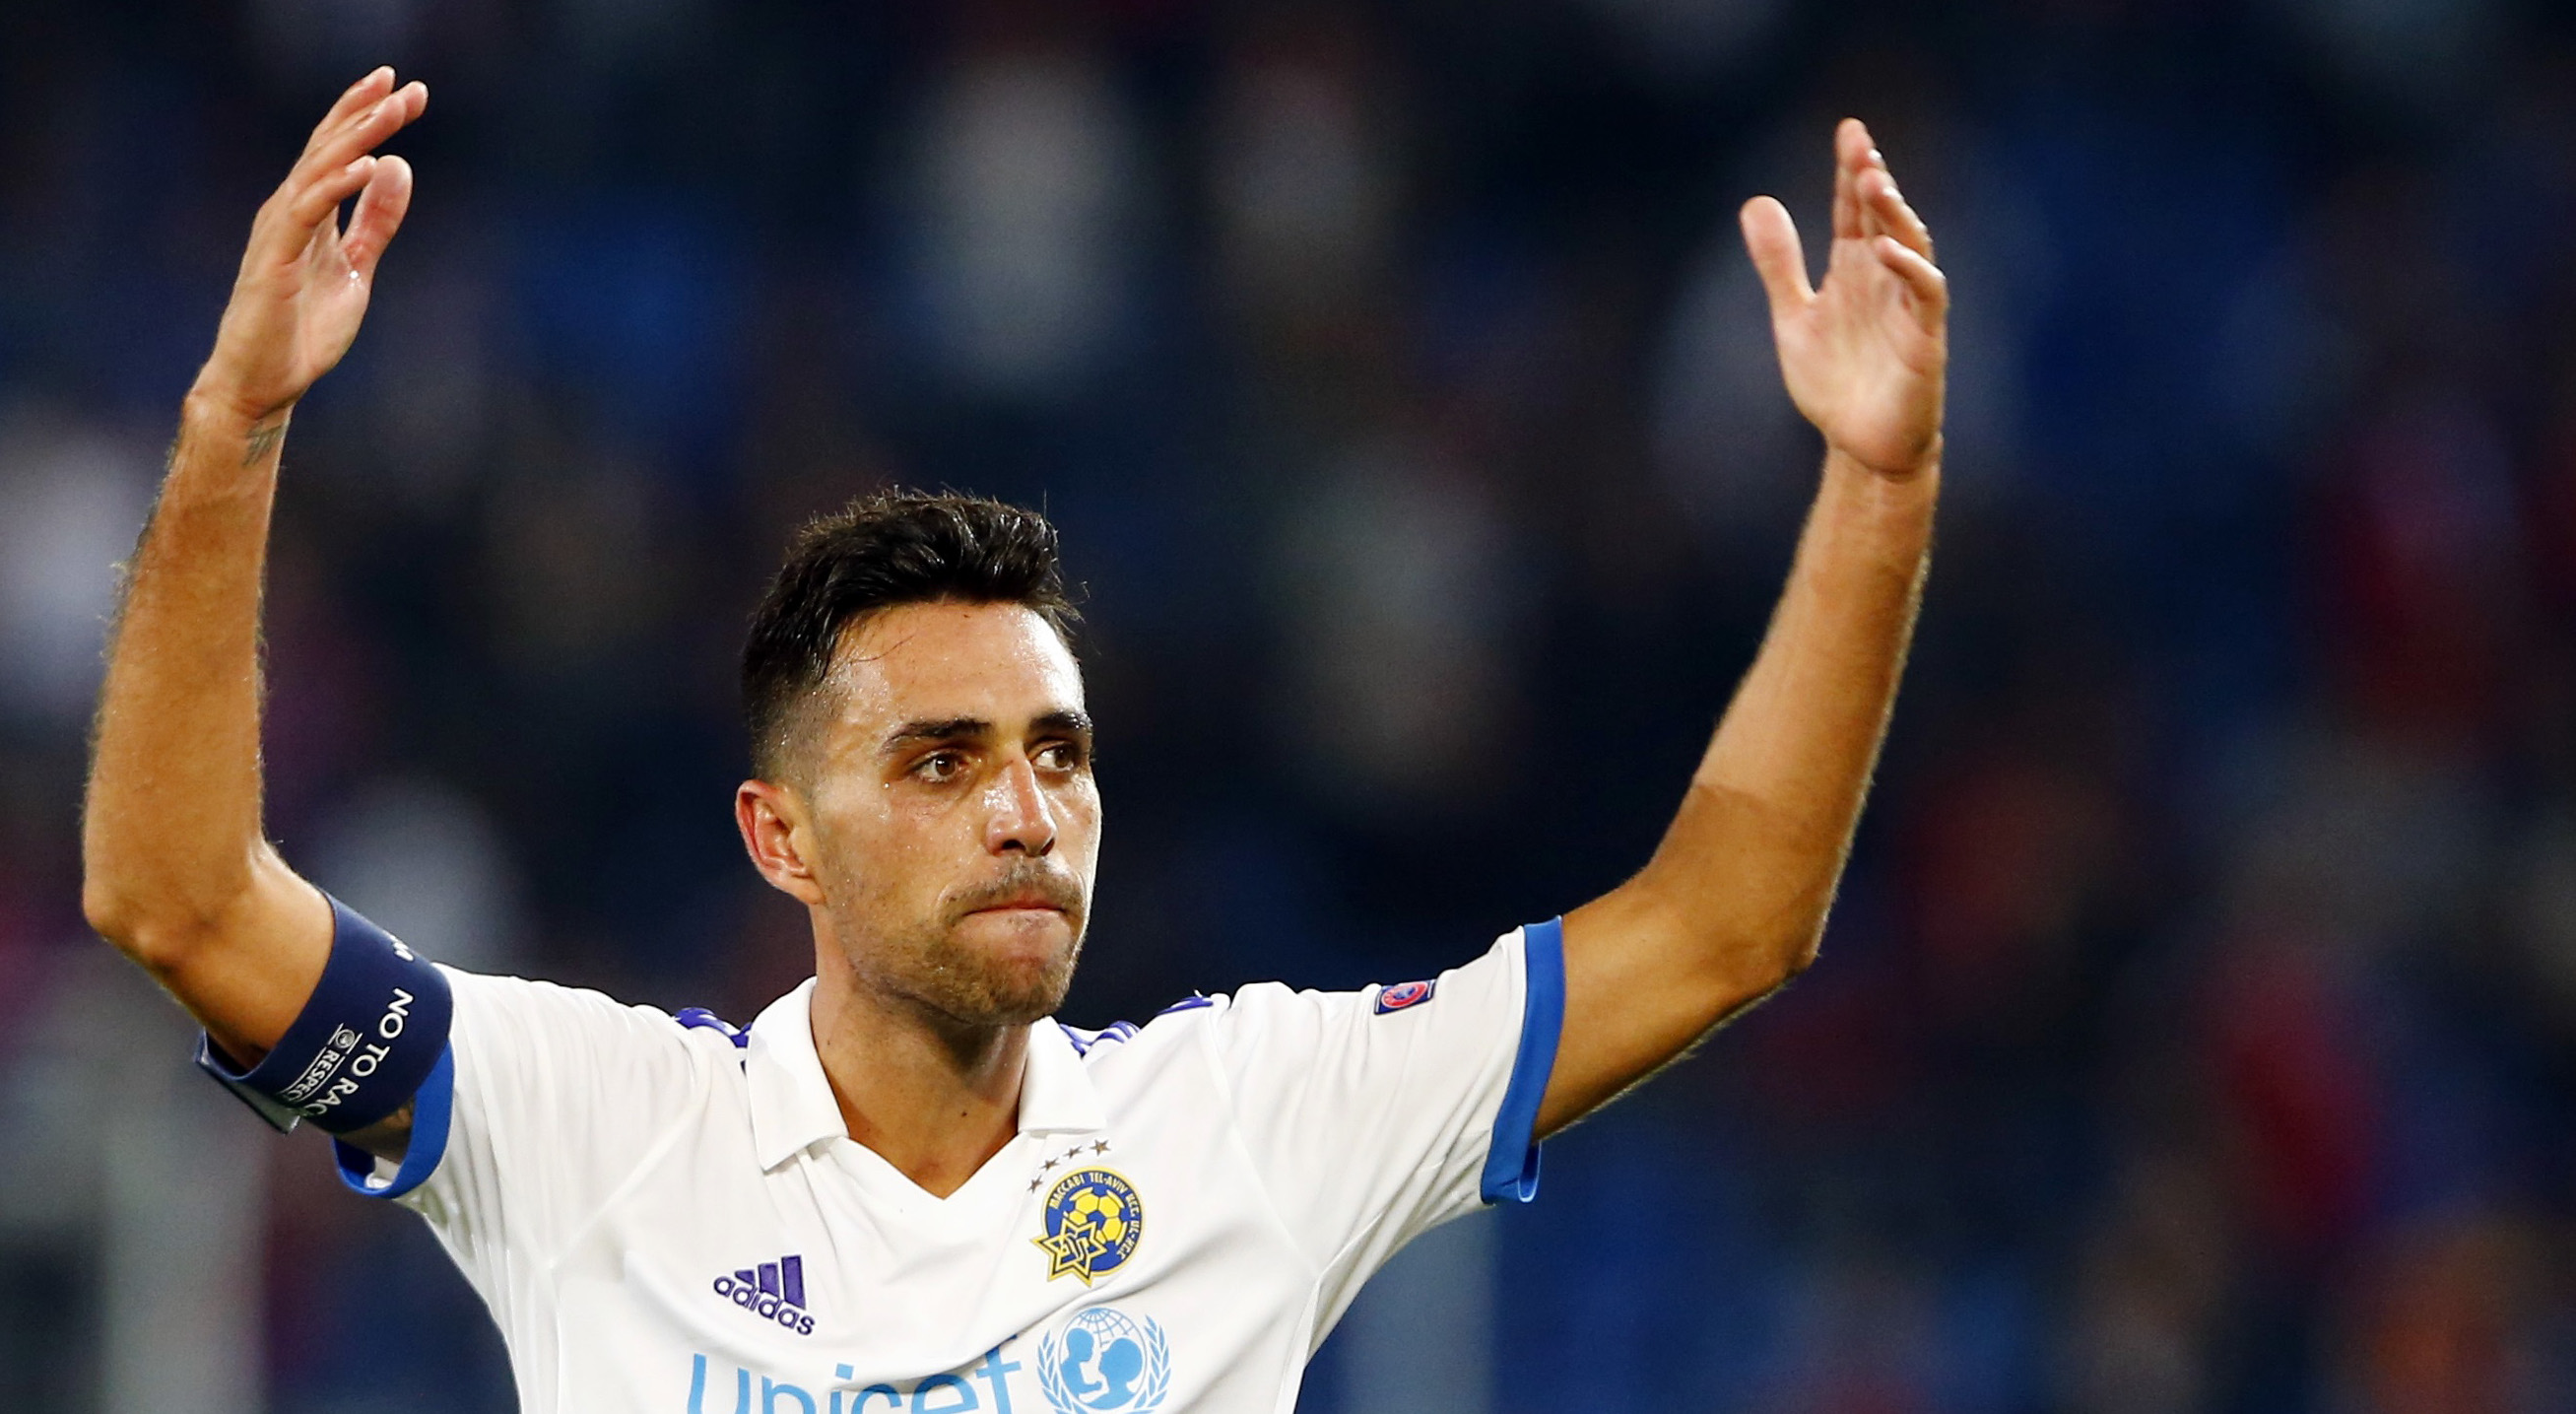 Maccabi Tel Aviv's Eran Zahavi reacts after their Champions League play-off first leg soccer match against FC Basel at the St. Jakob Park stadium in Basel August 19, 2015. REUTERS/Arnd Wiegmann